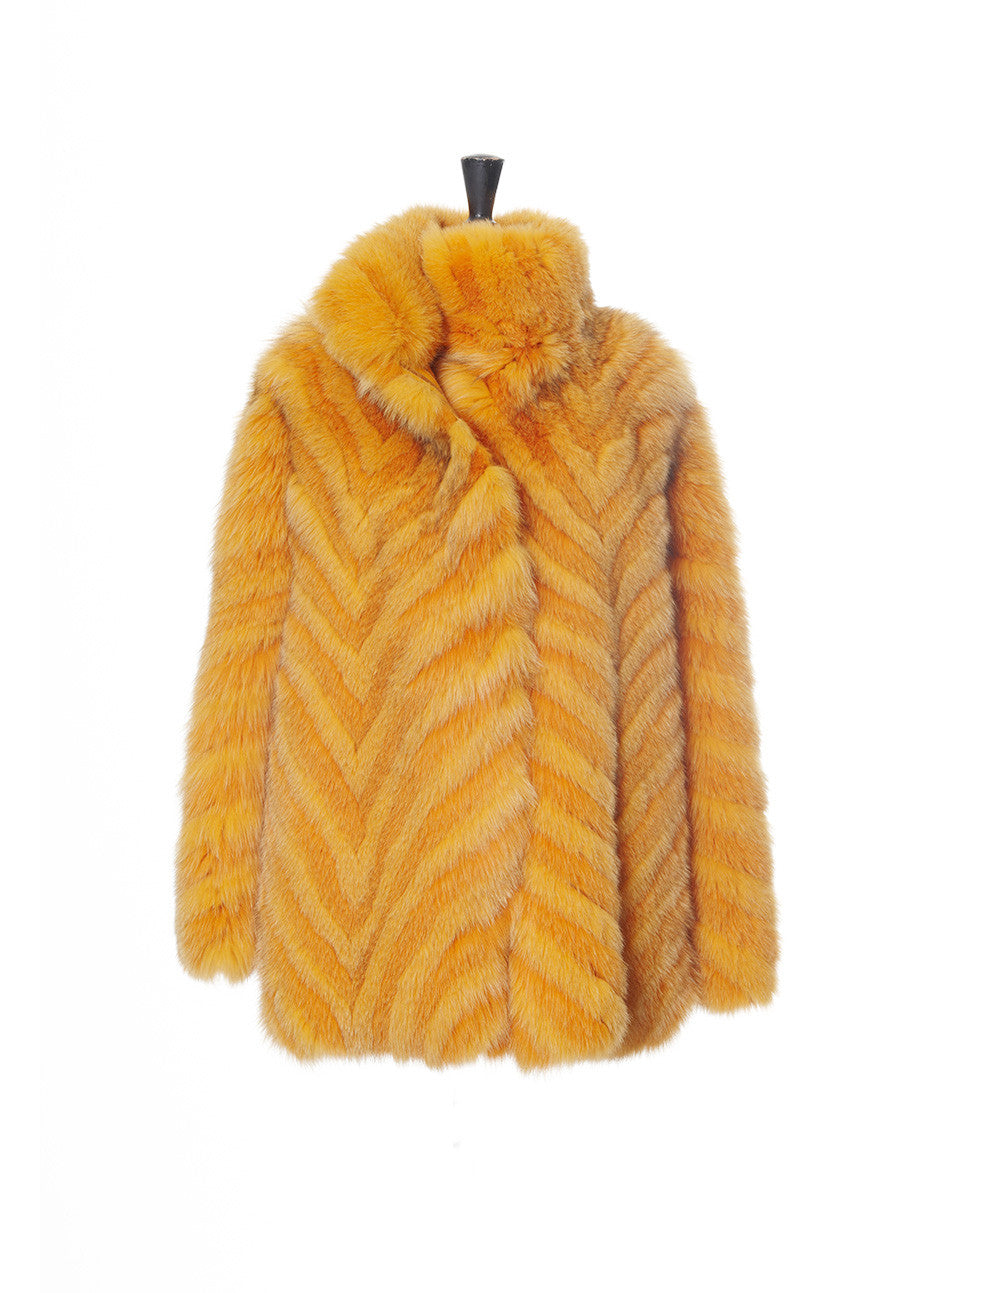 Yellow Striped Fox Jacket - Elena Benarroch - Fur - TOPGEARNY